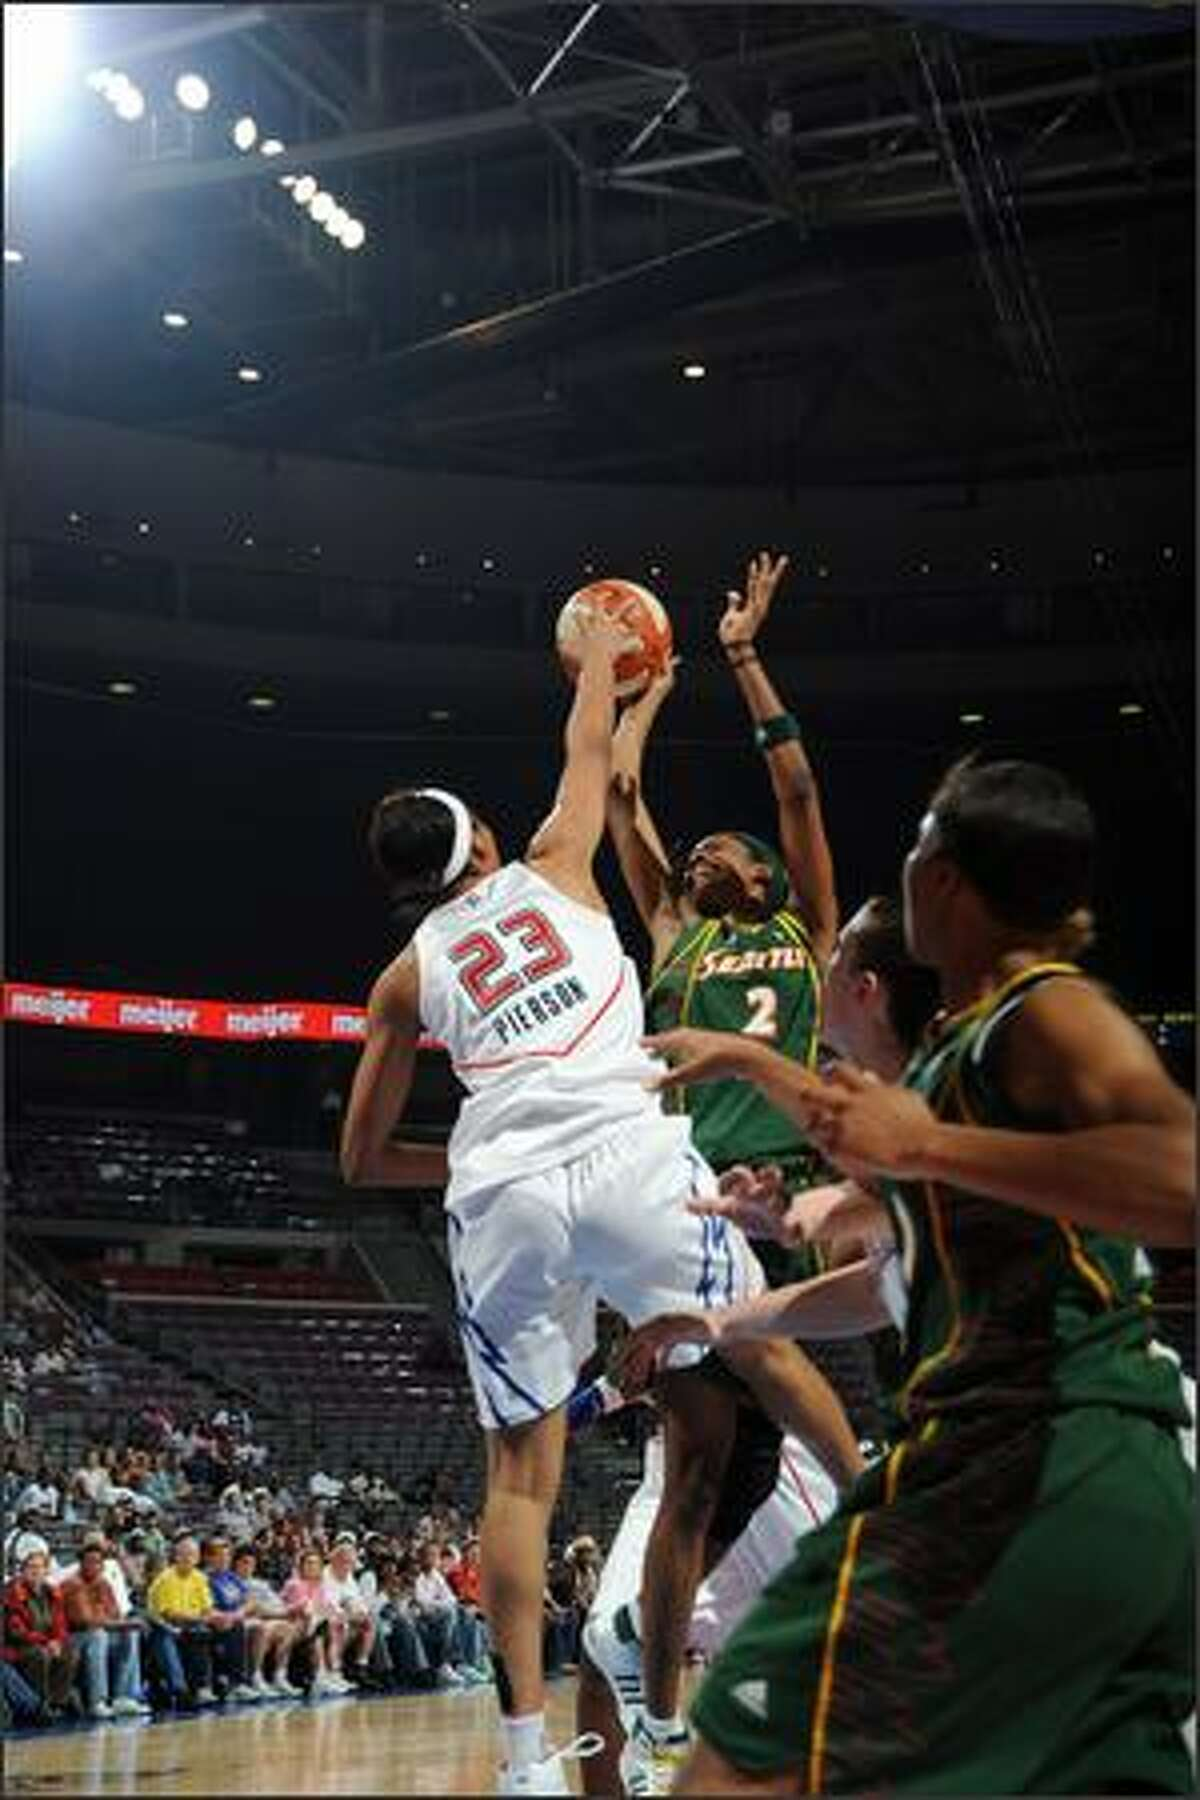 Swin Cash #2 of the Seattle Storm is blocked by Plenette Pierson #23 of the Detroit Shock in Wednesday's game.